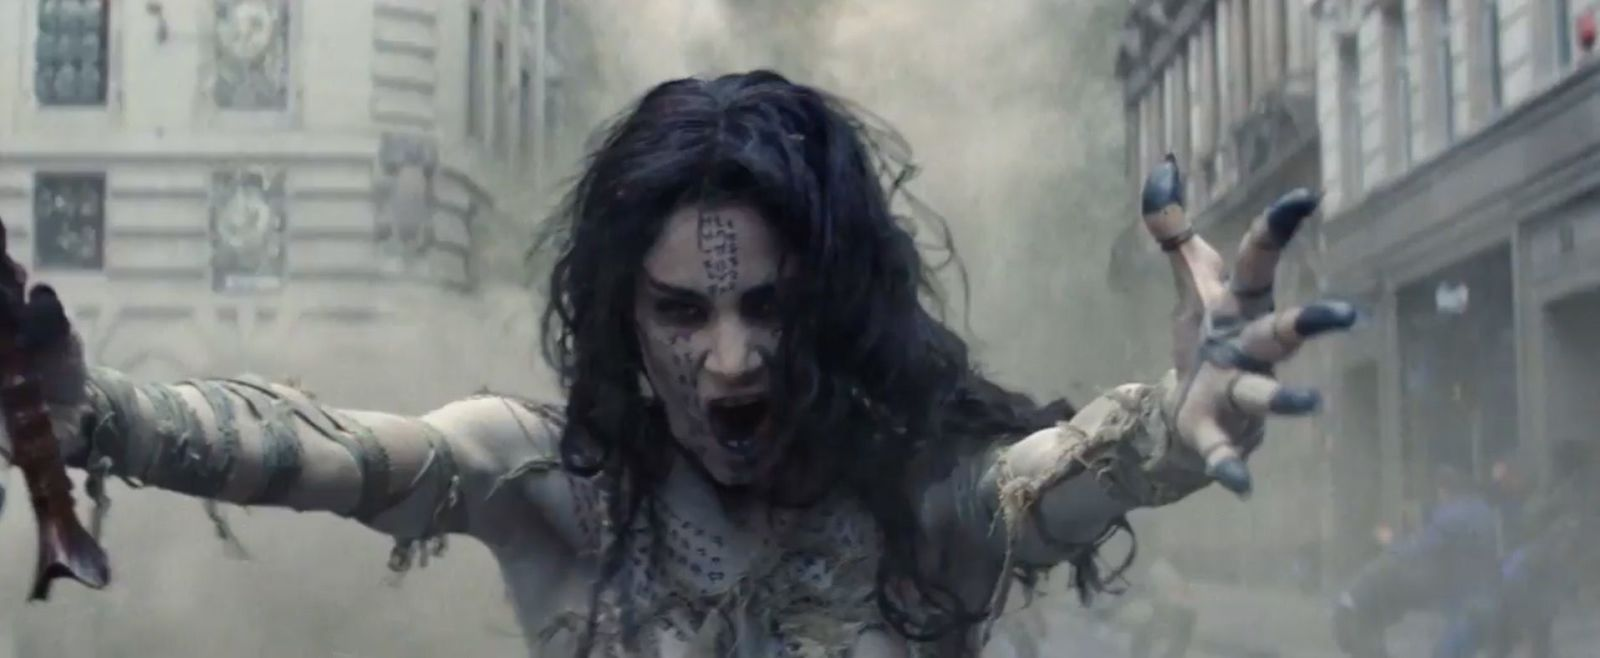 Wallpaper The Mummy 2017 Movies Hd Movies 4142: The Mummy 2017 Cast, Trailer, Release Date, Plot And